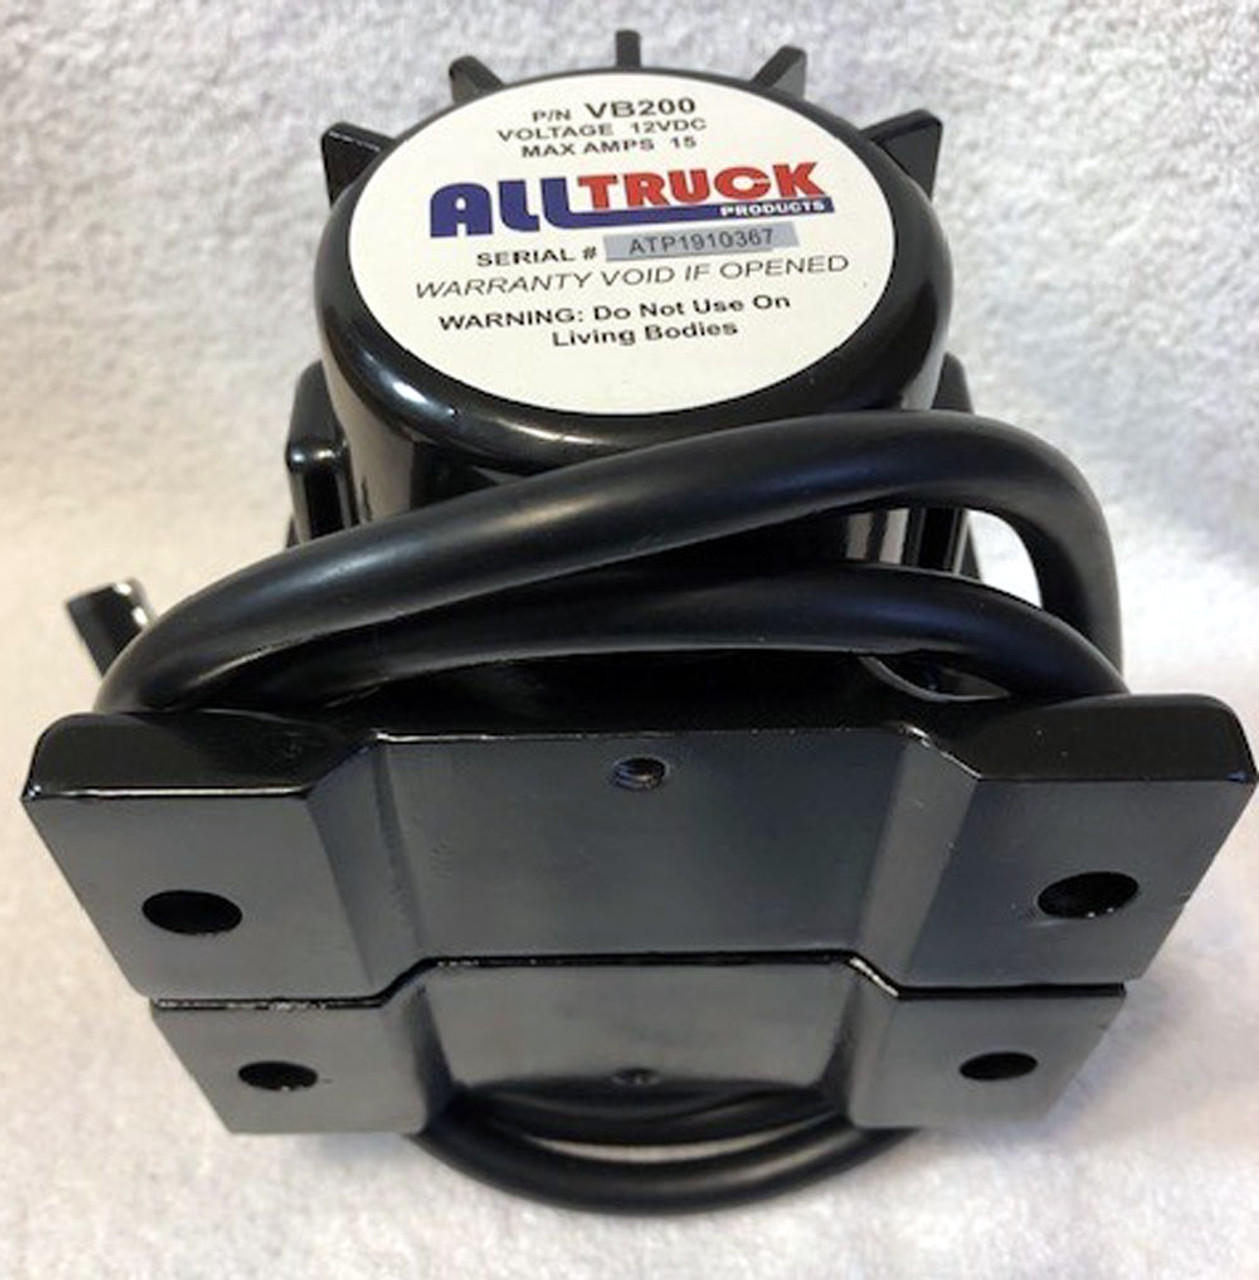 ALL TRUCK PRODUCTS ATPVB200 VIBRATOR 3